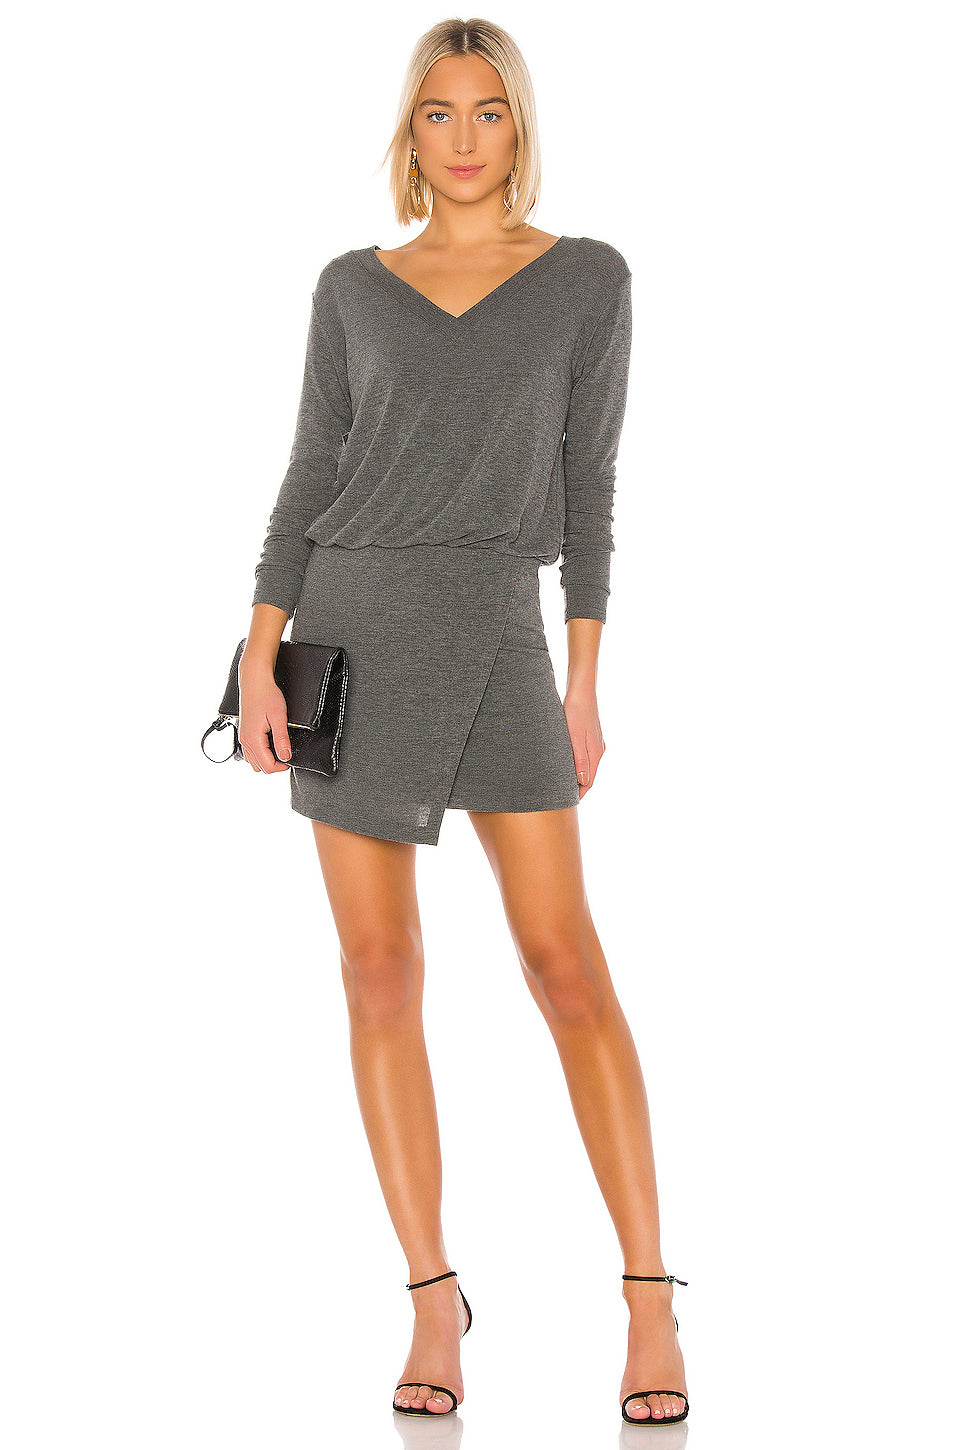 Lloyd T-Shirt Mini Dress in Marengo